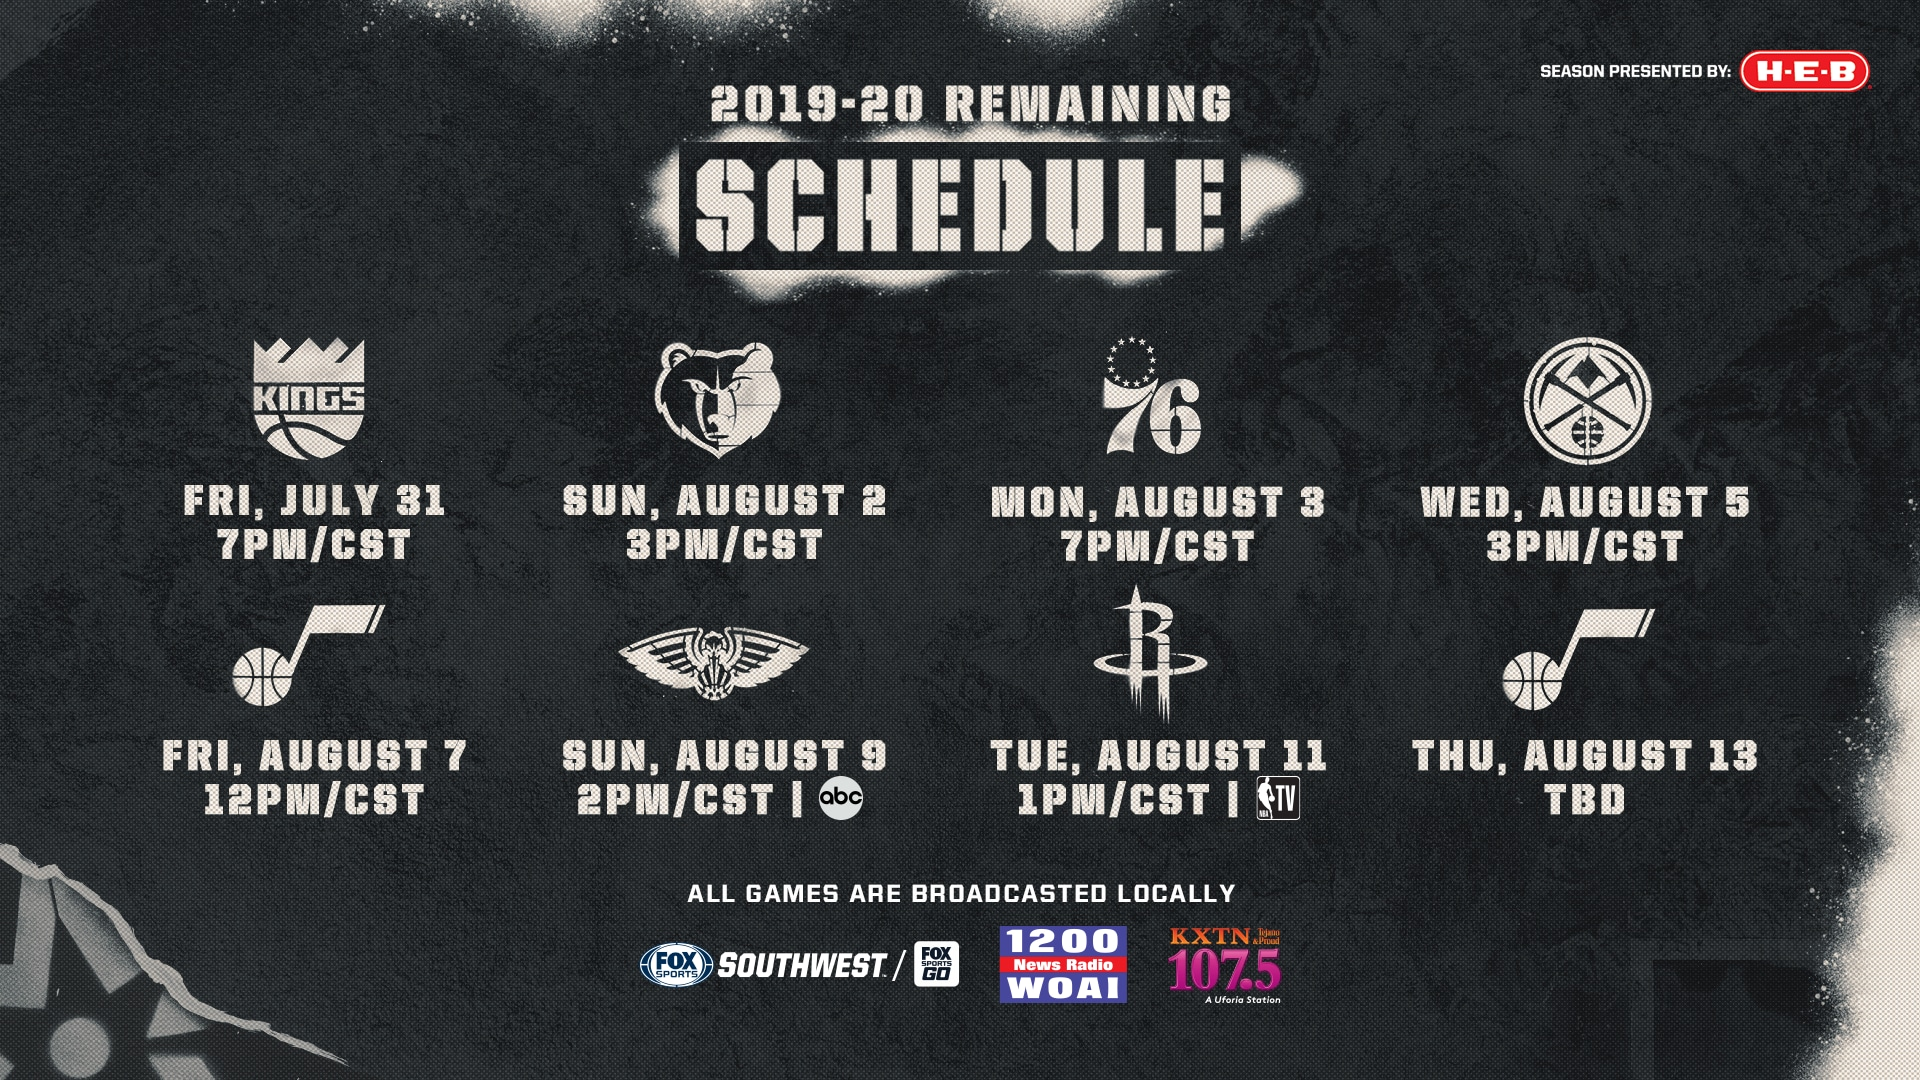 Fox Sports Southwest To Provide Live Broadcasts Of Regular Season Spurs Games San Antonio Spurs